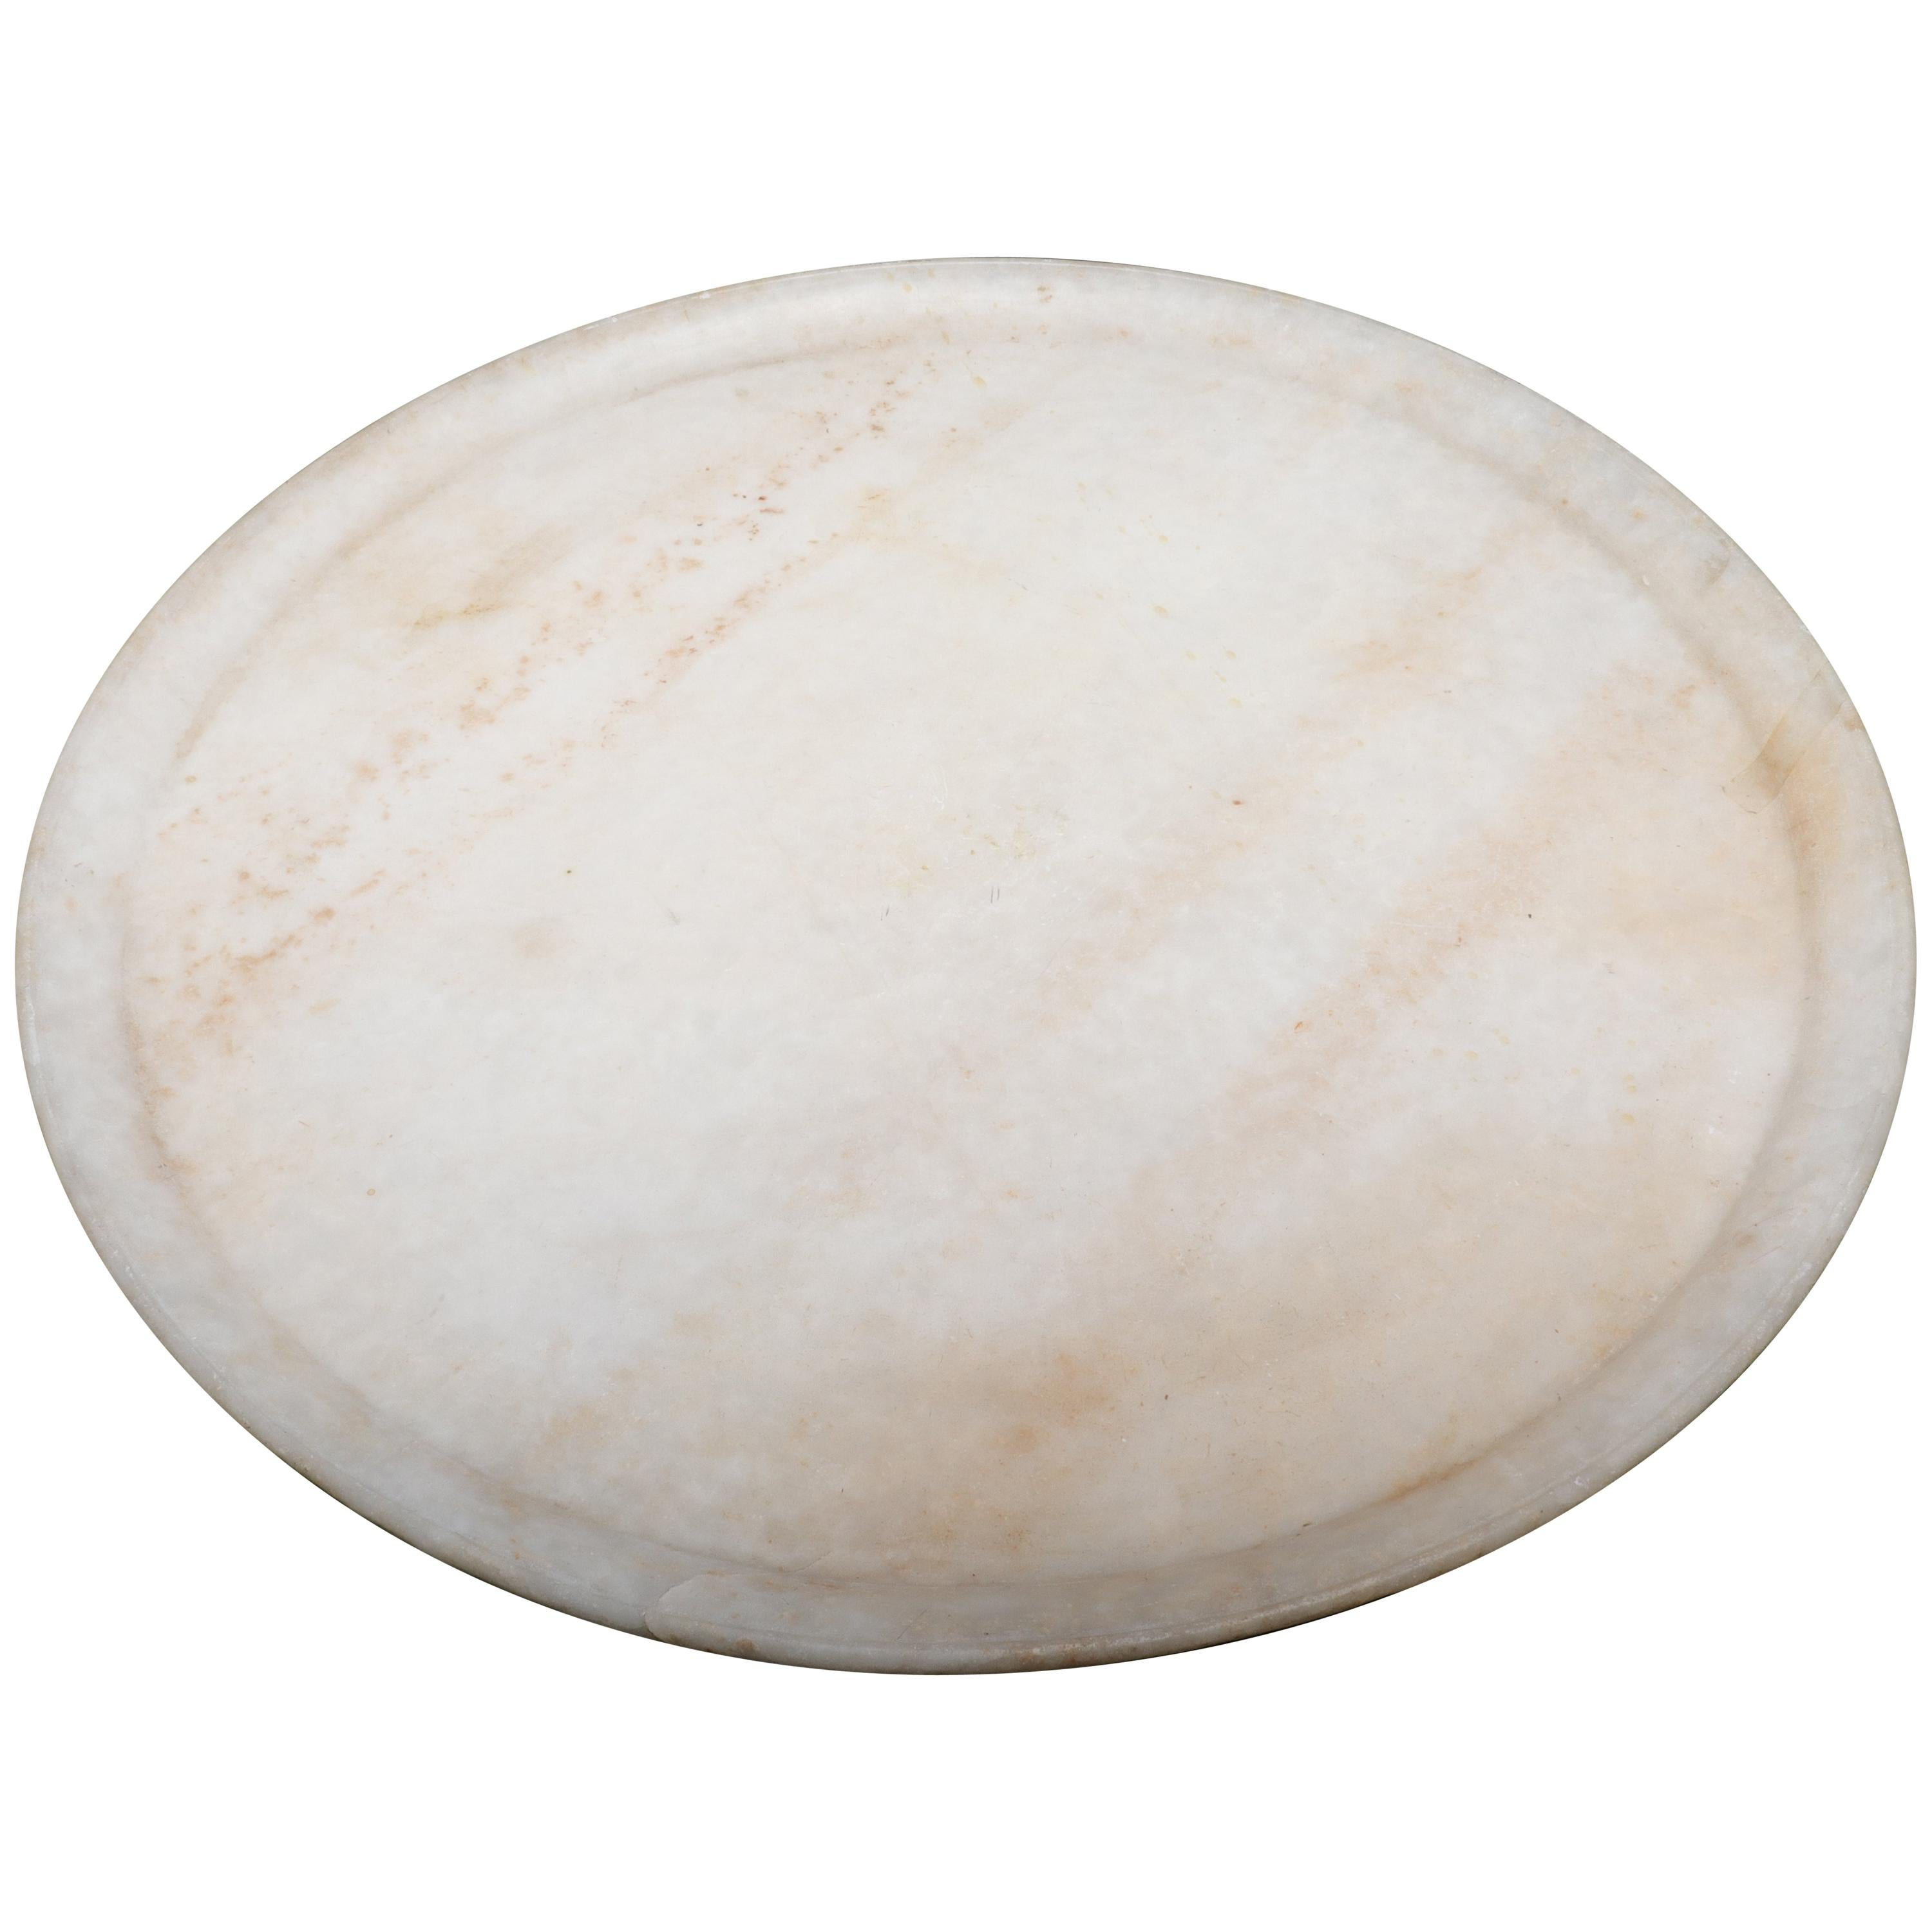 Classical Large Round White Marble Serving Tray